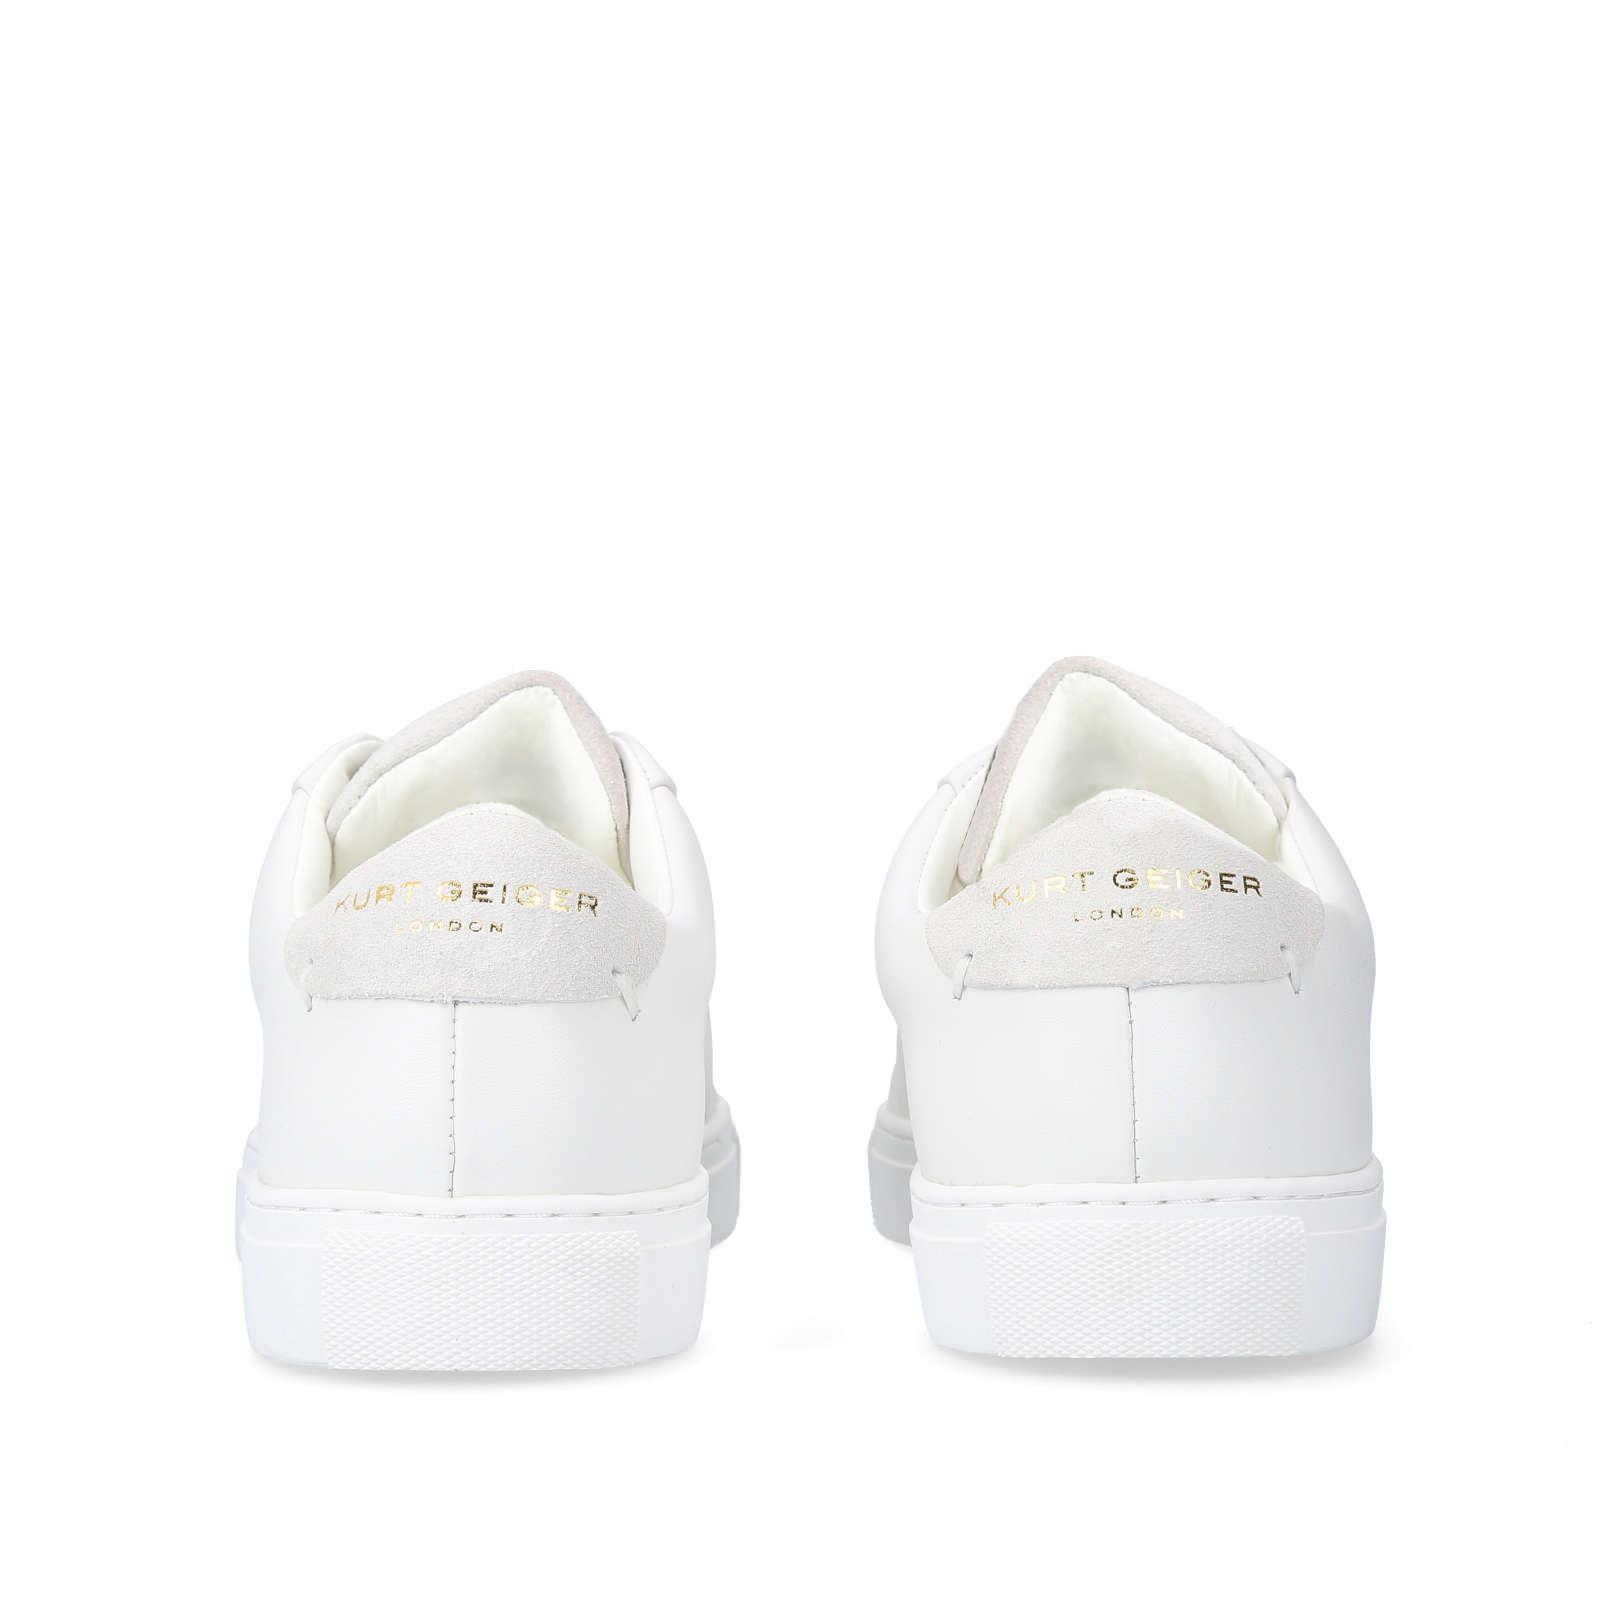 Kurt Geiger Leather Donnie in White for Men